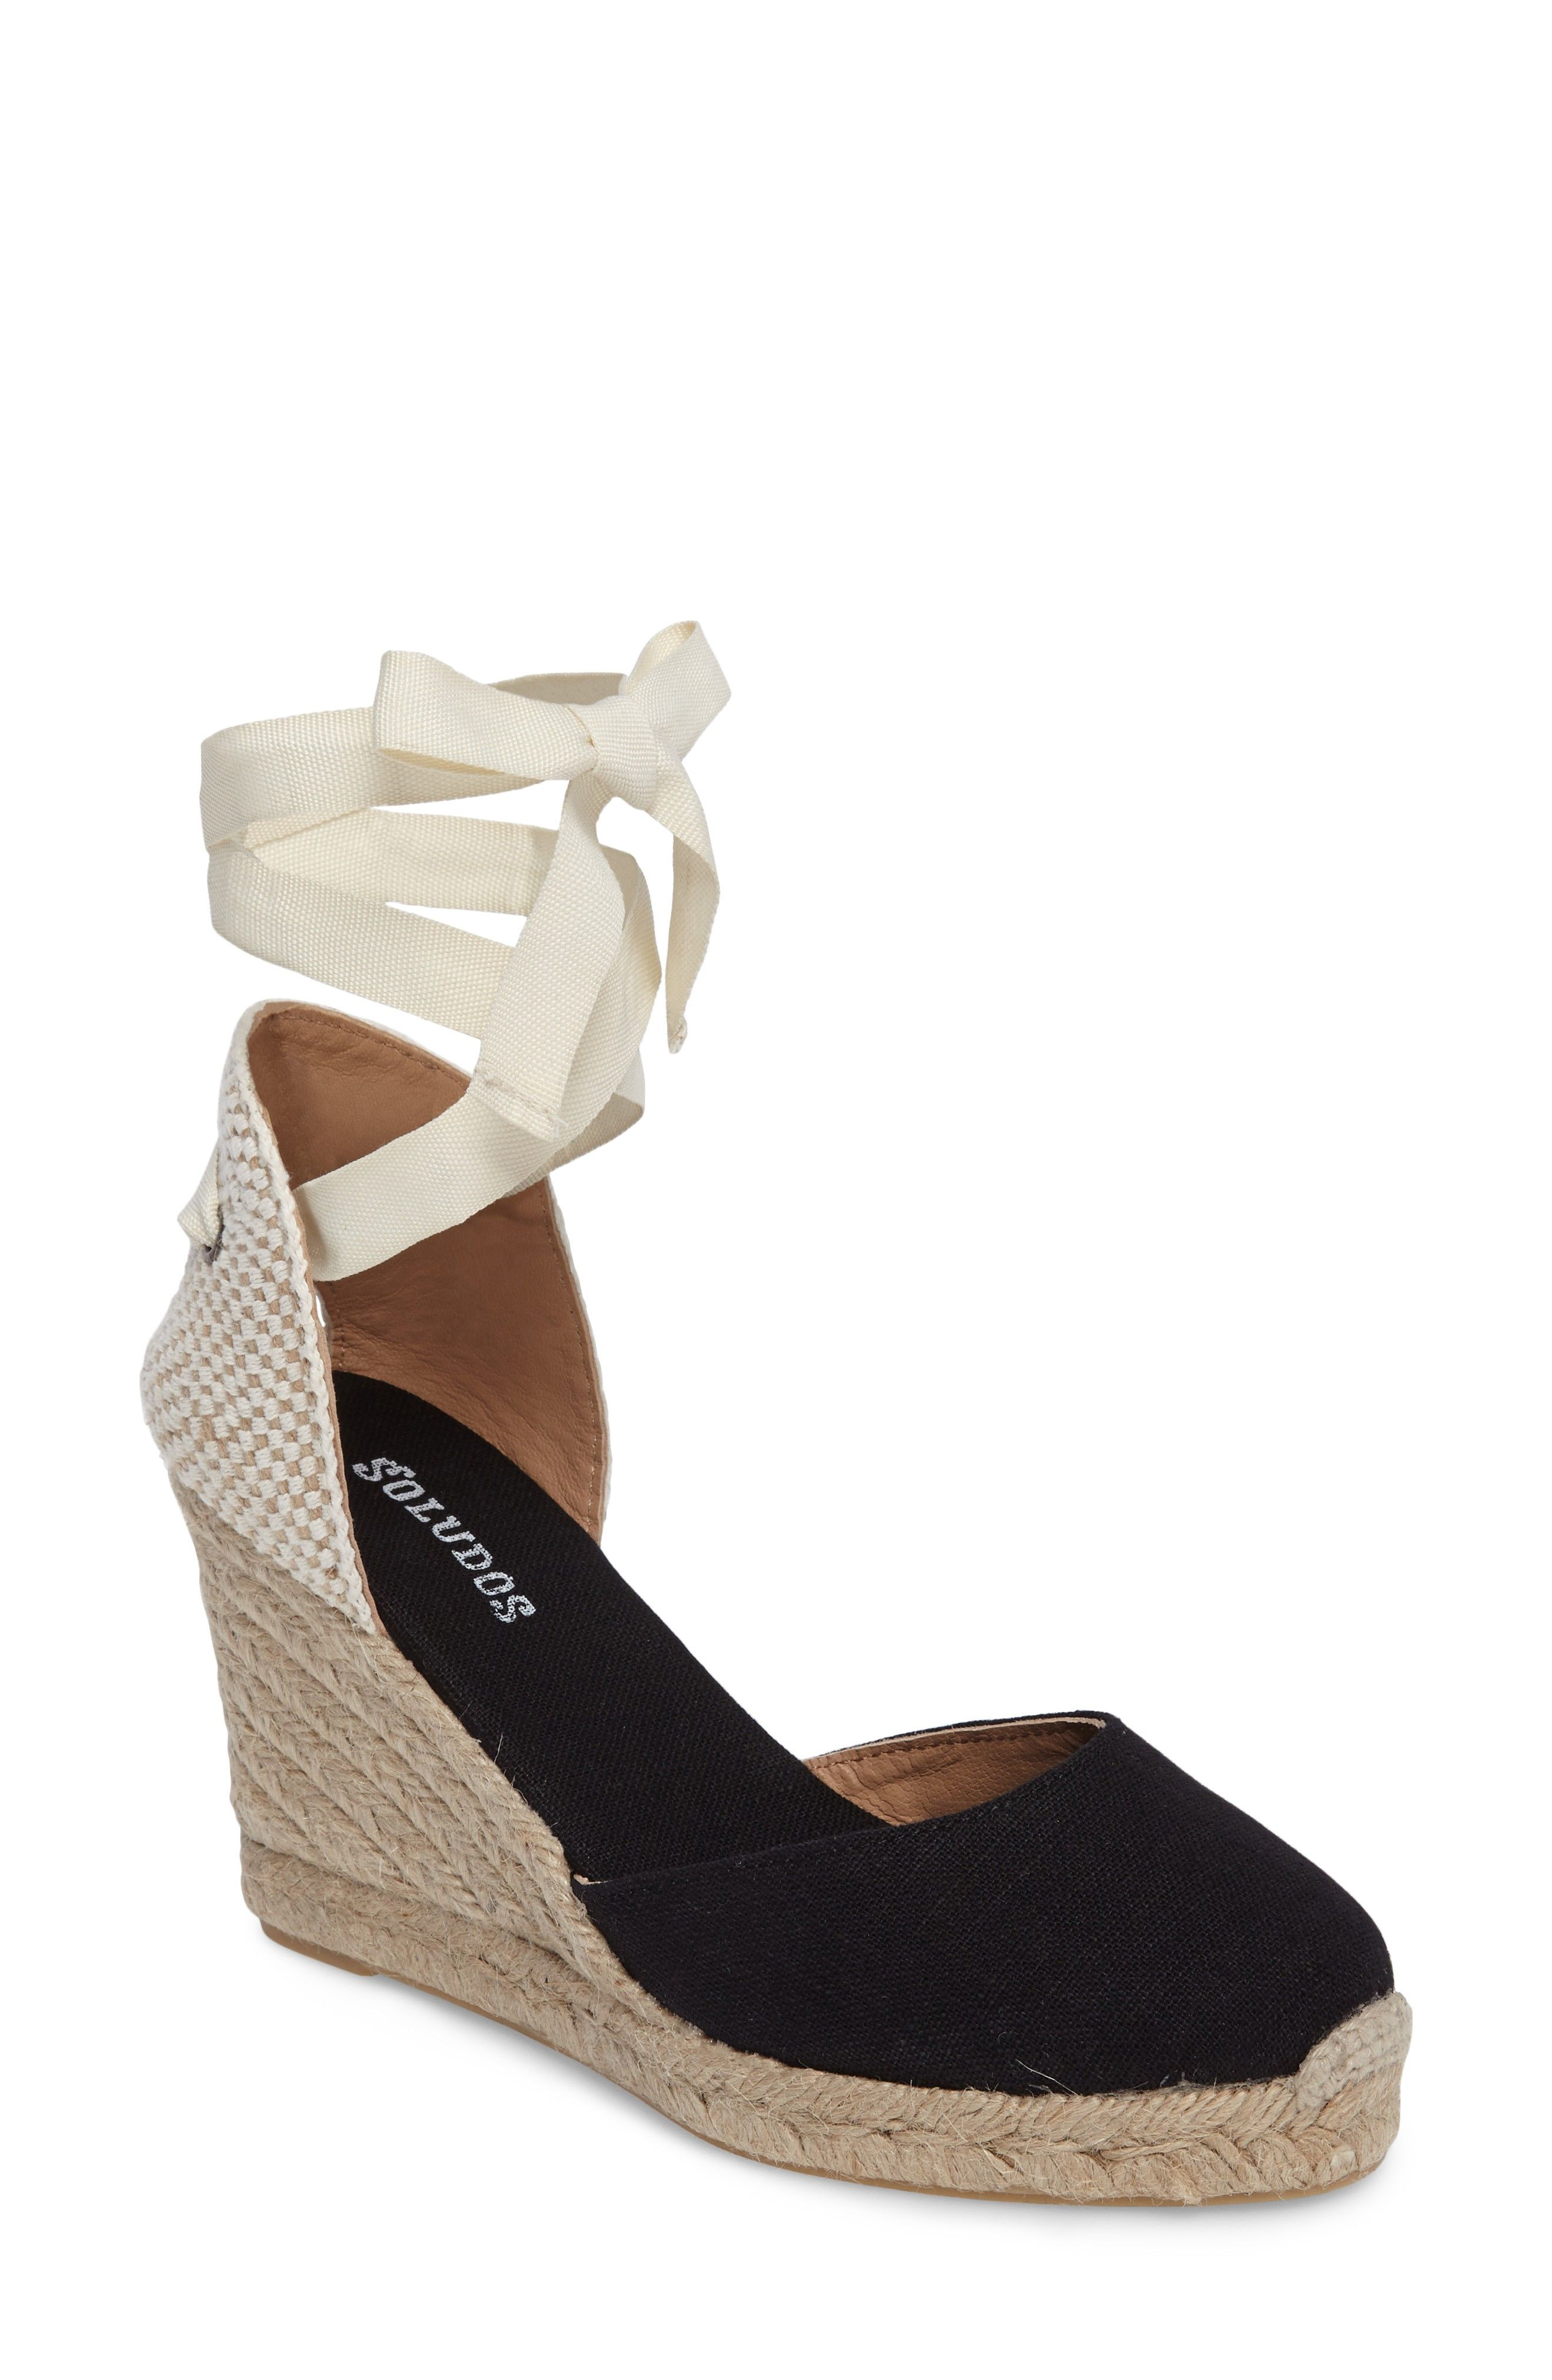 2bfee07e3d5c Wedge Lace-Up Espadrille Sandal